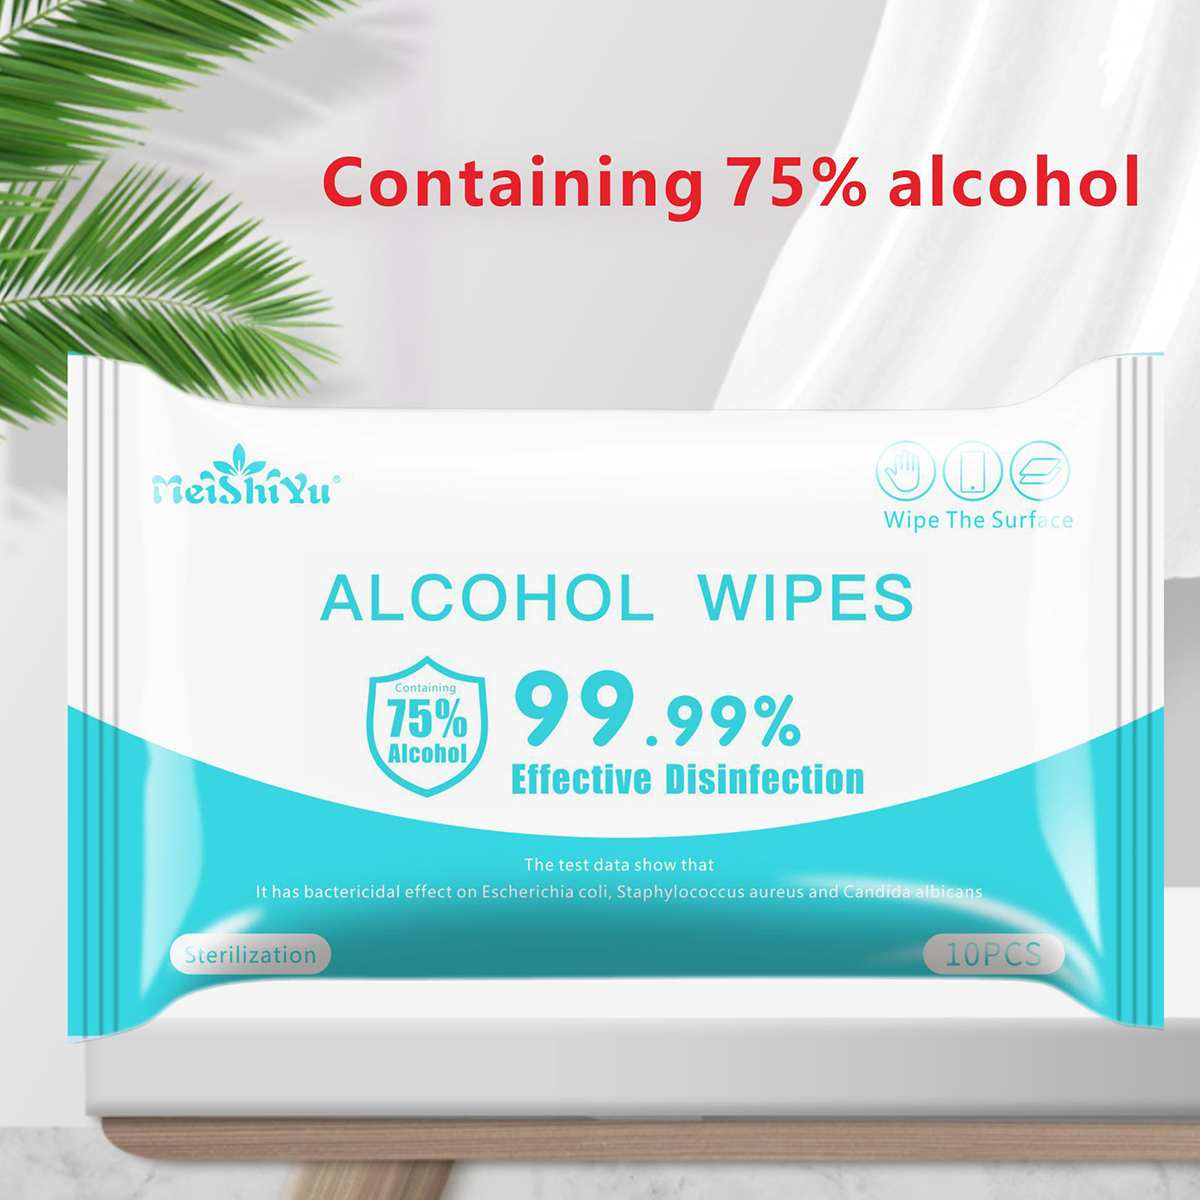 10pcs Portable Disinfection Antiseptic Pads Alcohol Swabs Wet Wipes Skin Cleaning Care Sterilization Aid Cleaning Tissue Box